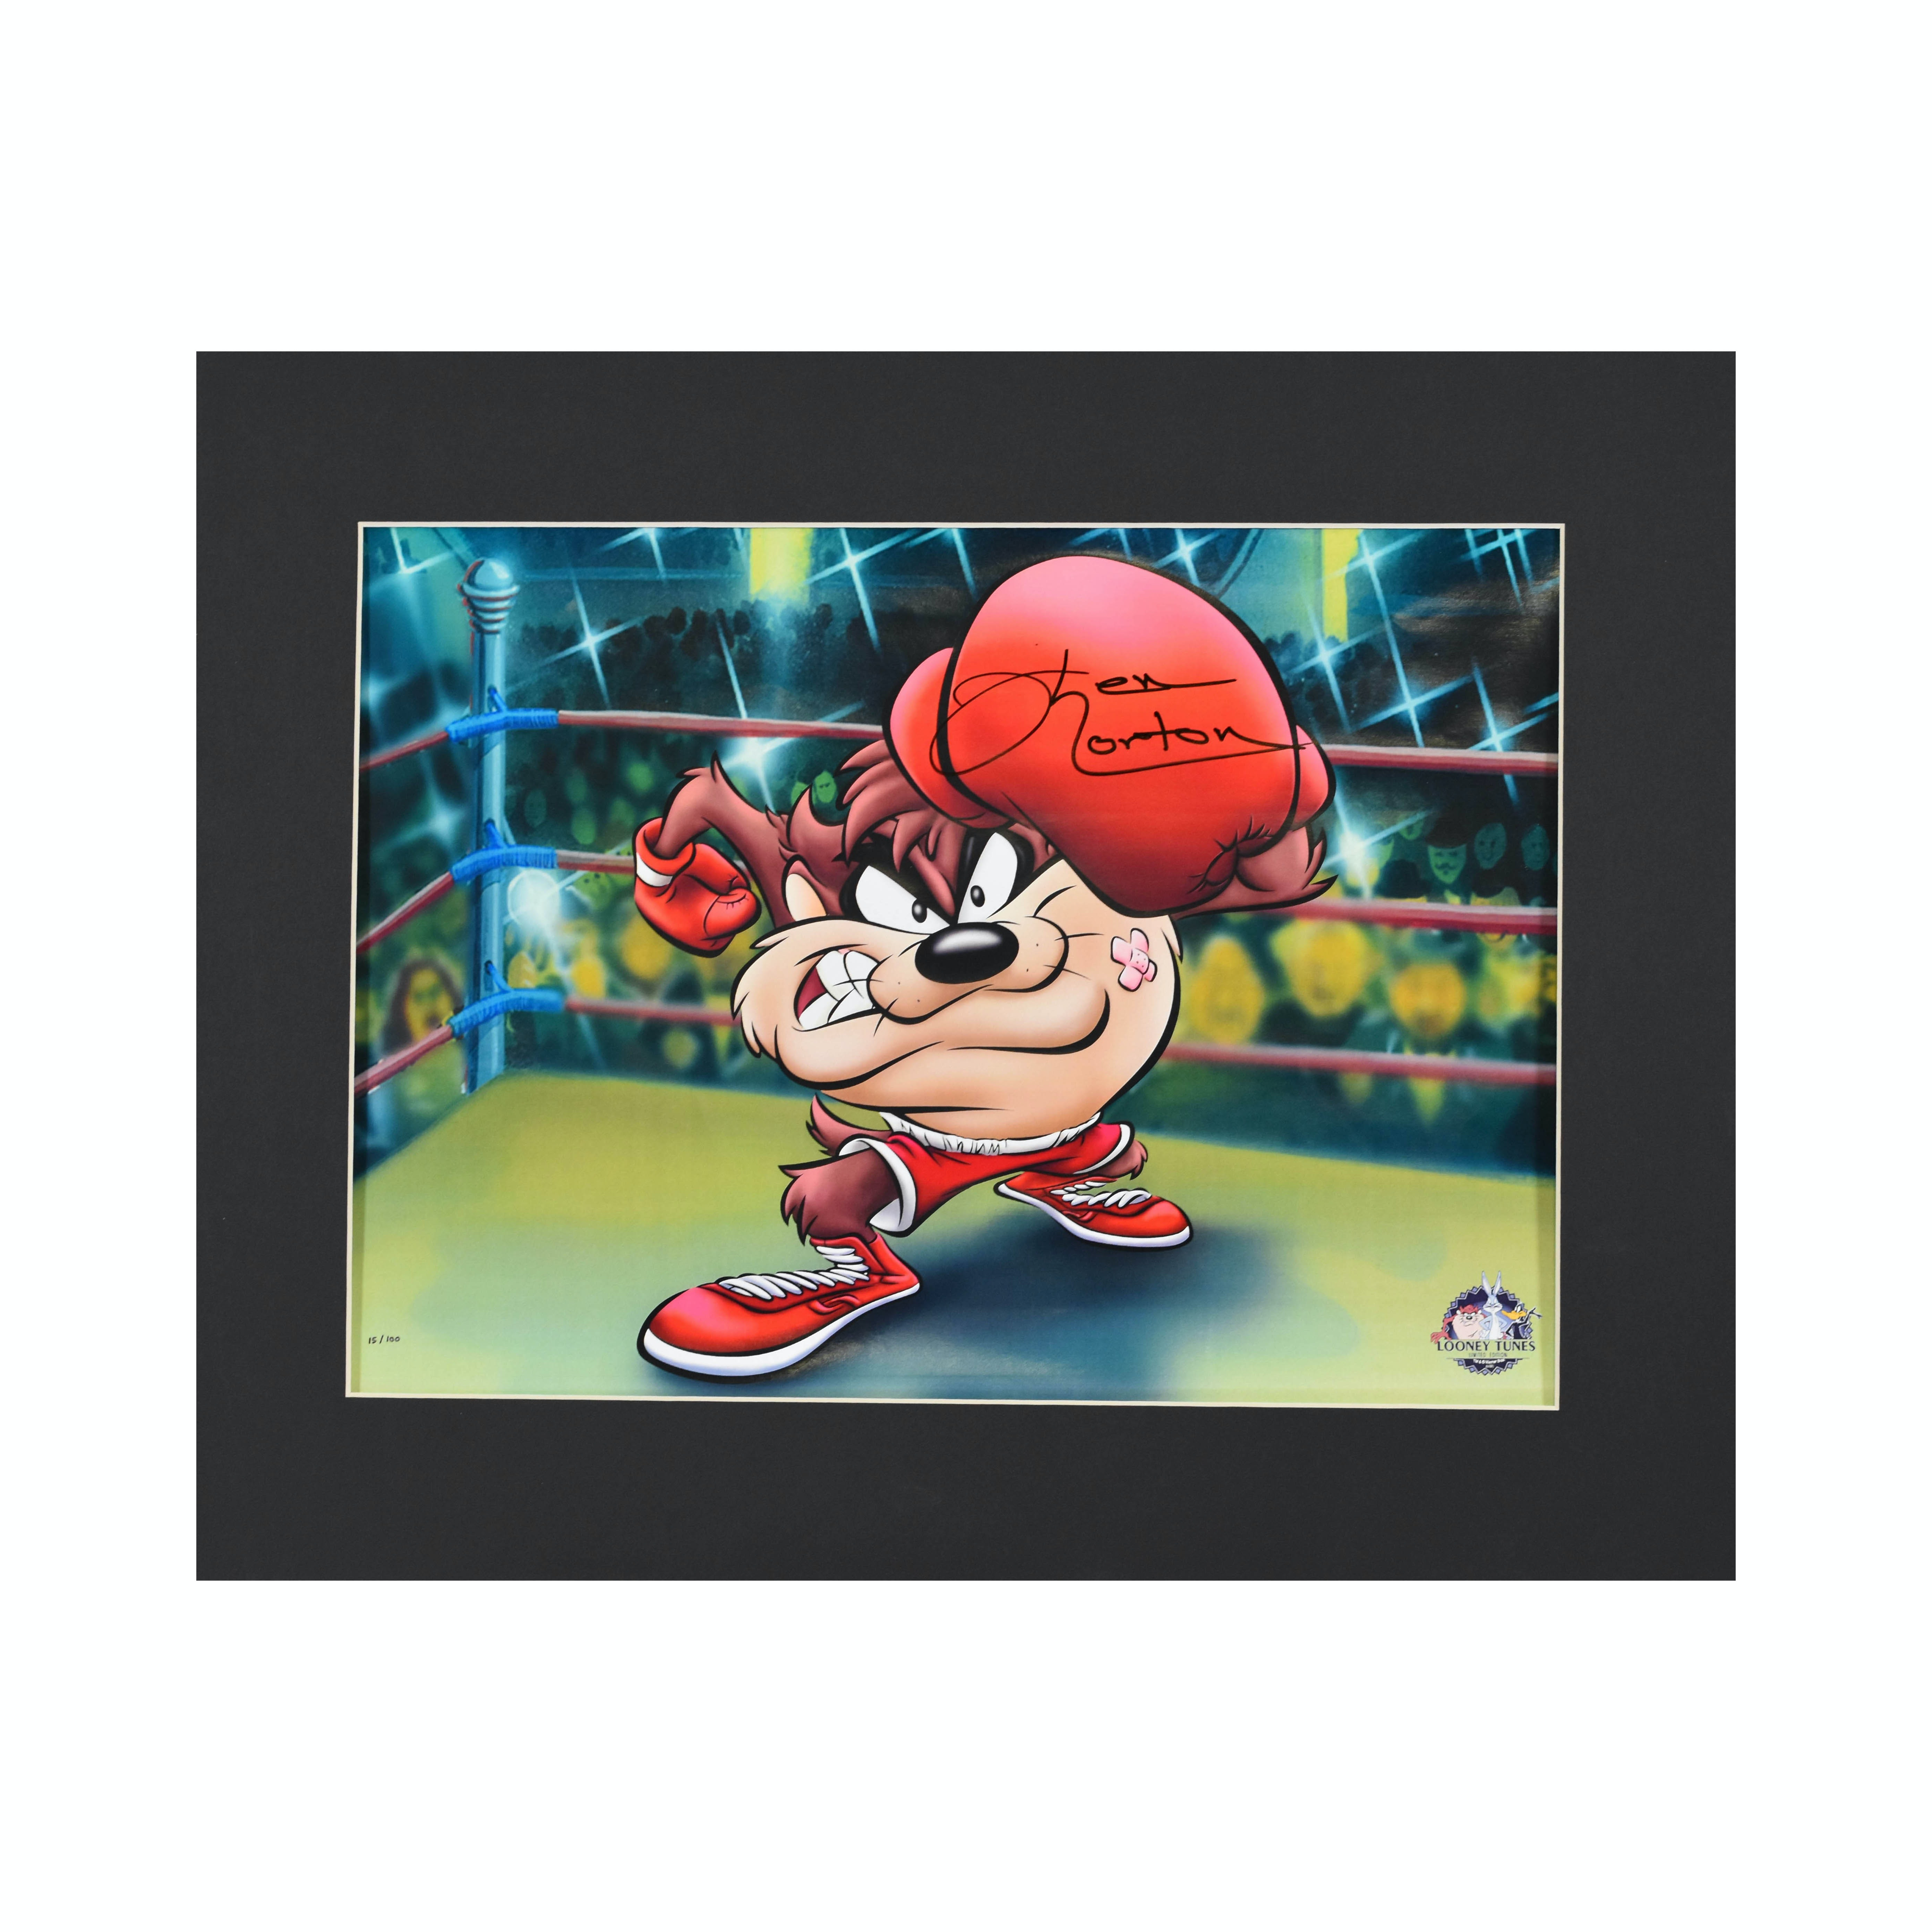 Warner Bros. LE Lithograph - Knock Out Taz signed by Ken Norton